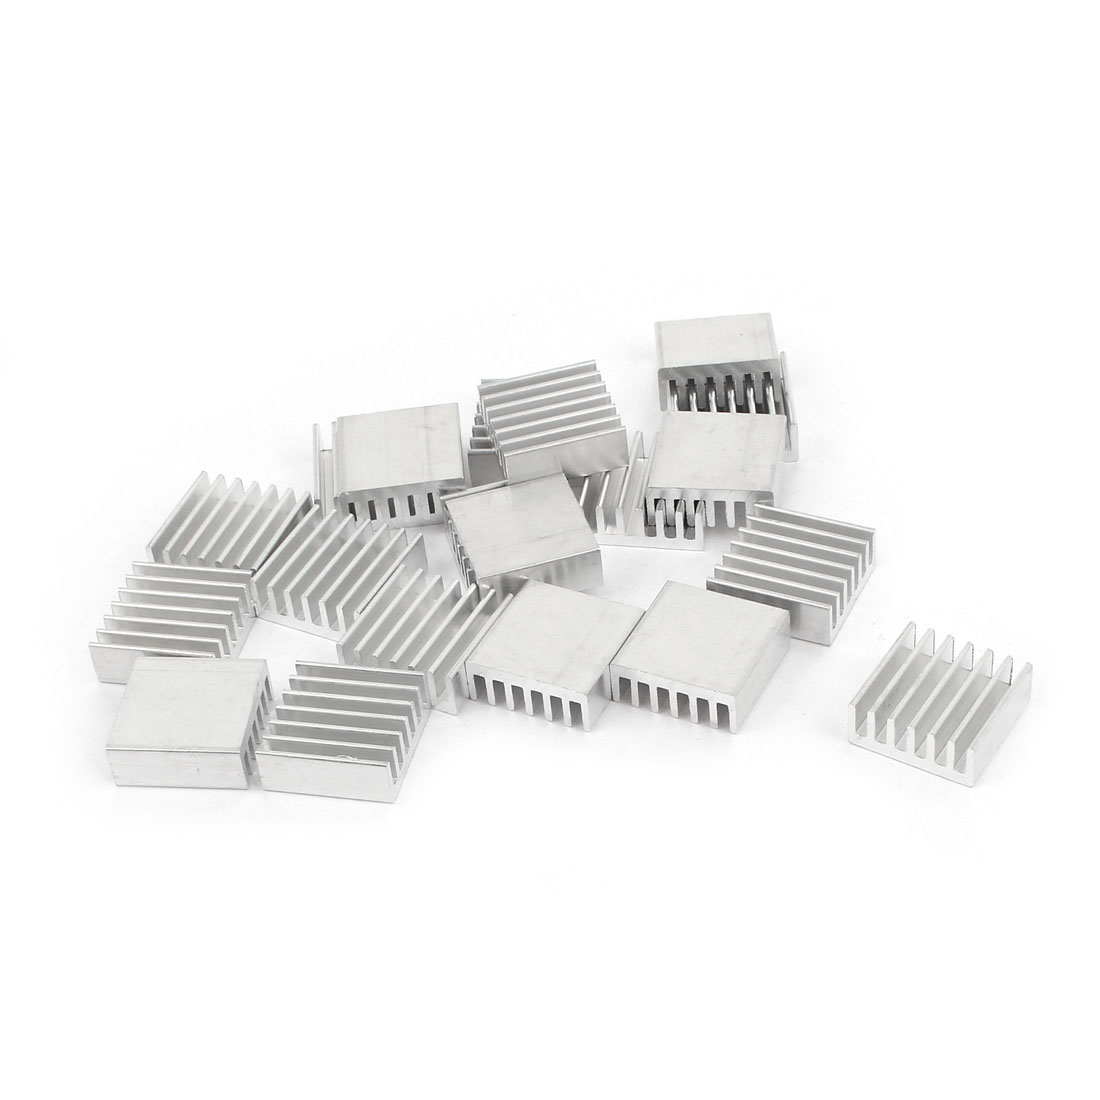 20 Pcs Silver Tone Aluminum Cooler Radiator Heat Sink Heatsink 14mm x 14mm x 6mm